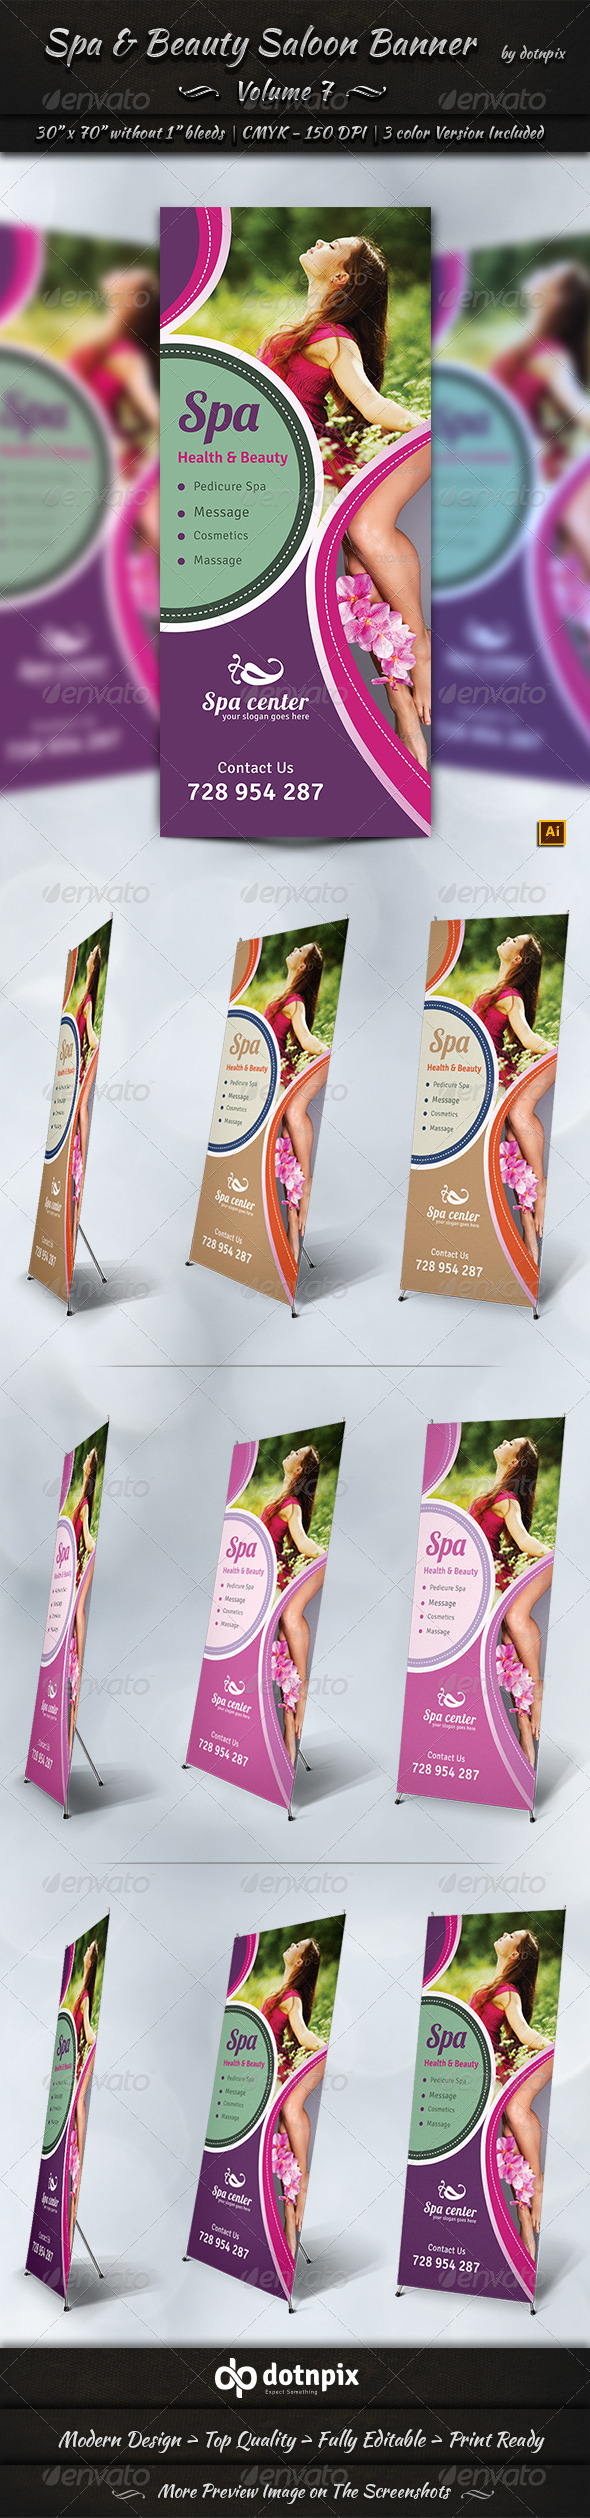 GraphicRiver Spa & Beauty Saloon Business Banner Volume 7 7880583